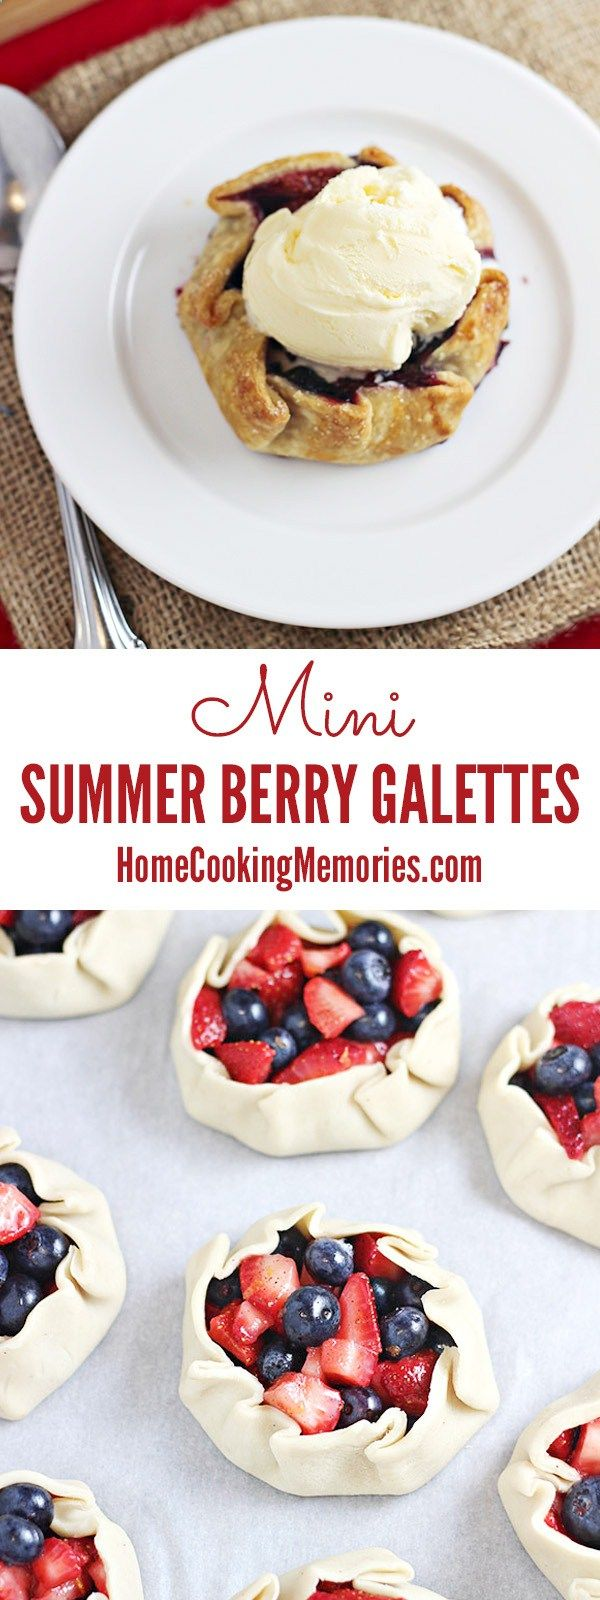 Mini Summer Berry Galettes are like a pie, but so much easier to make! Its a summer dessert thats sure to impress your guests.